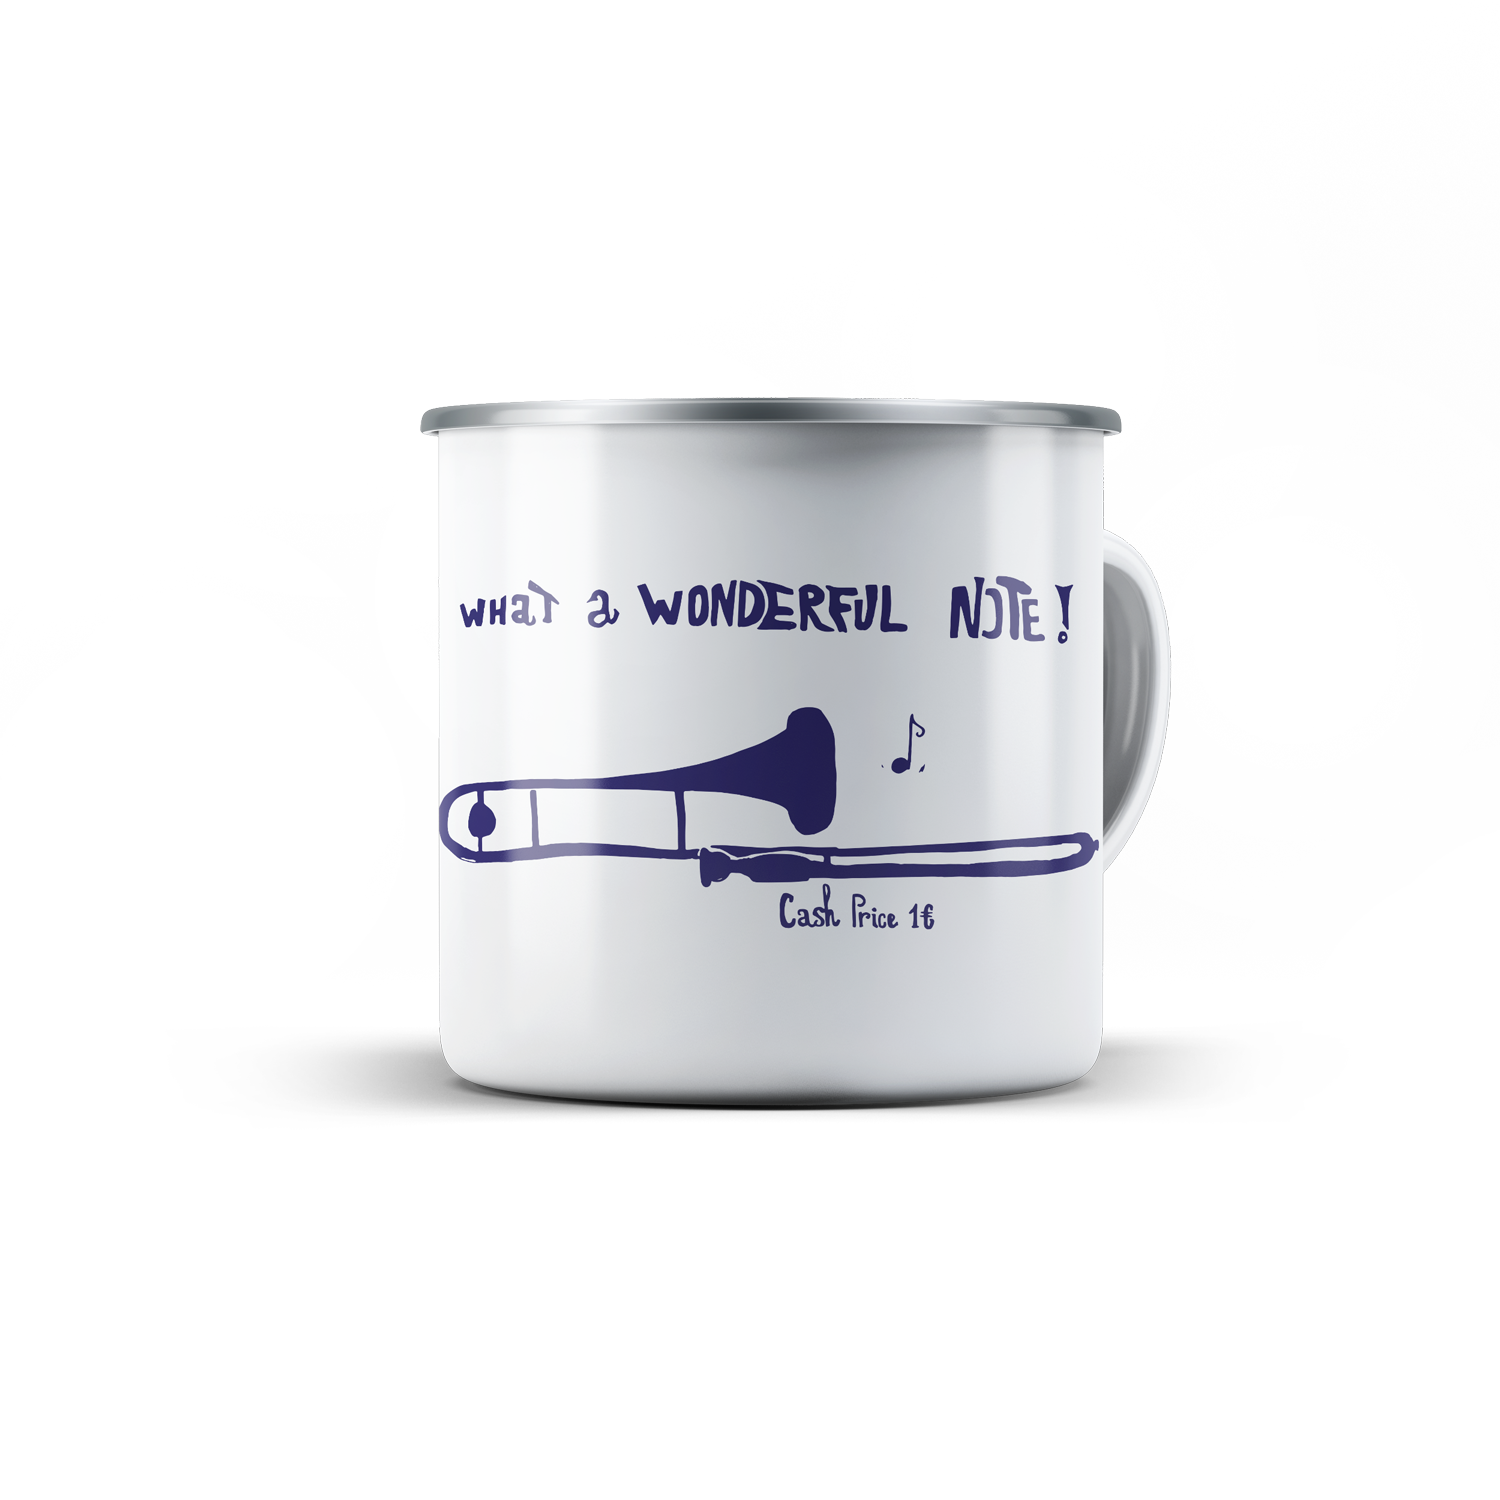 MUG WONDERFUL NOTE EMAIL